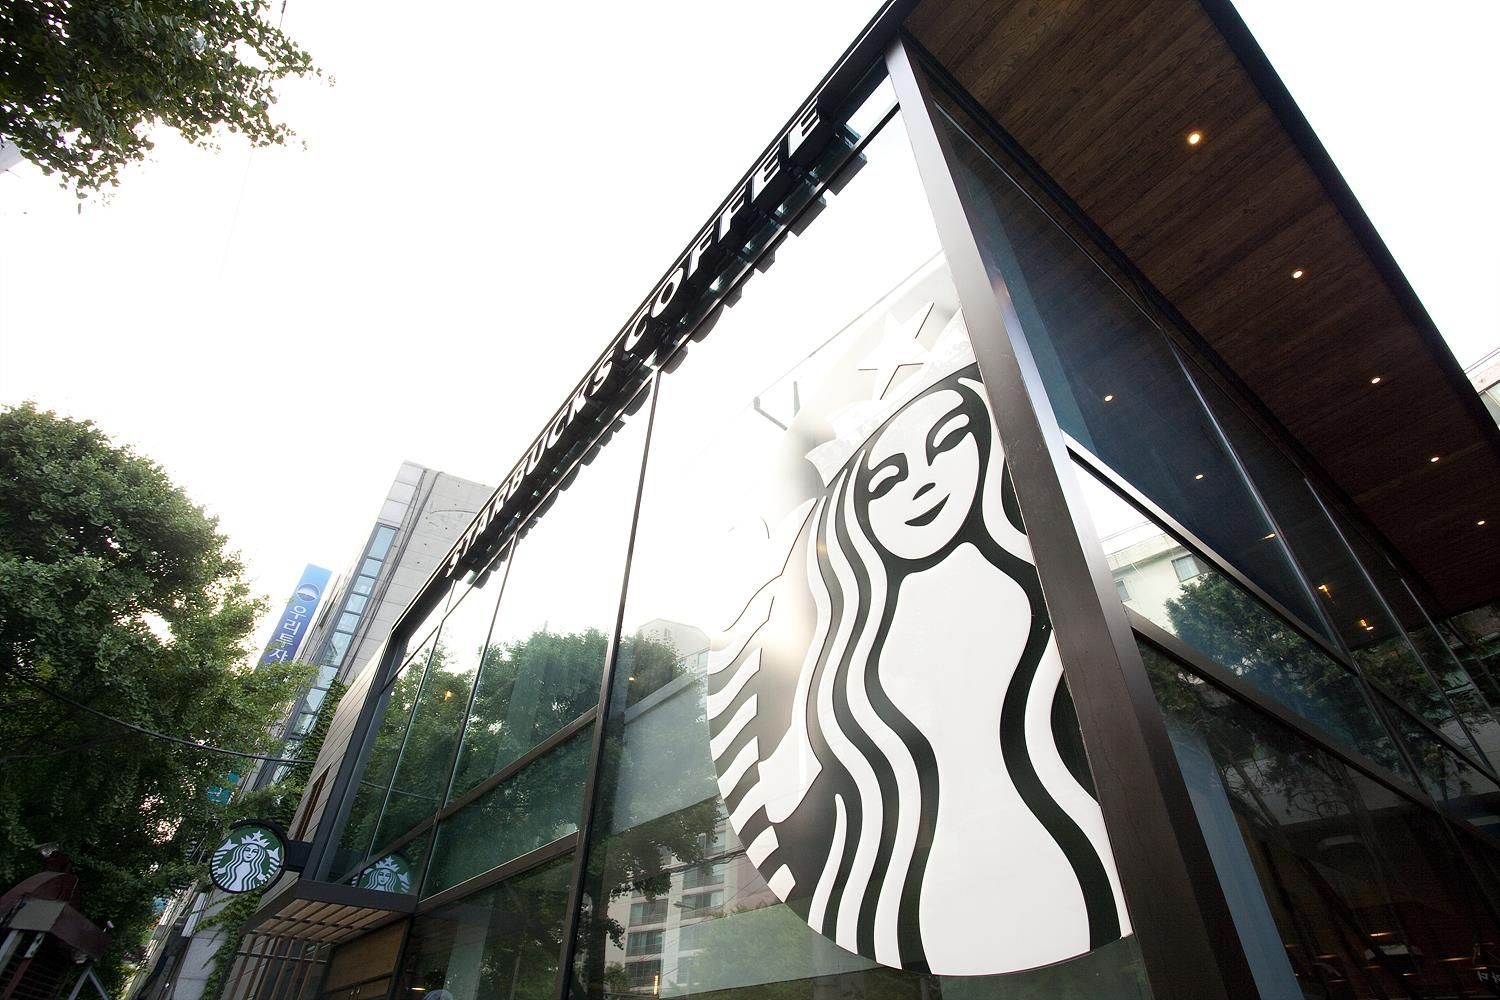 Starbucks in Dongbu Ichondong, Seoul, South Korea.